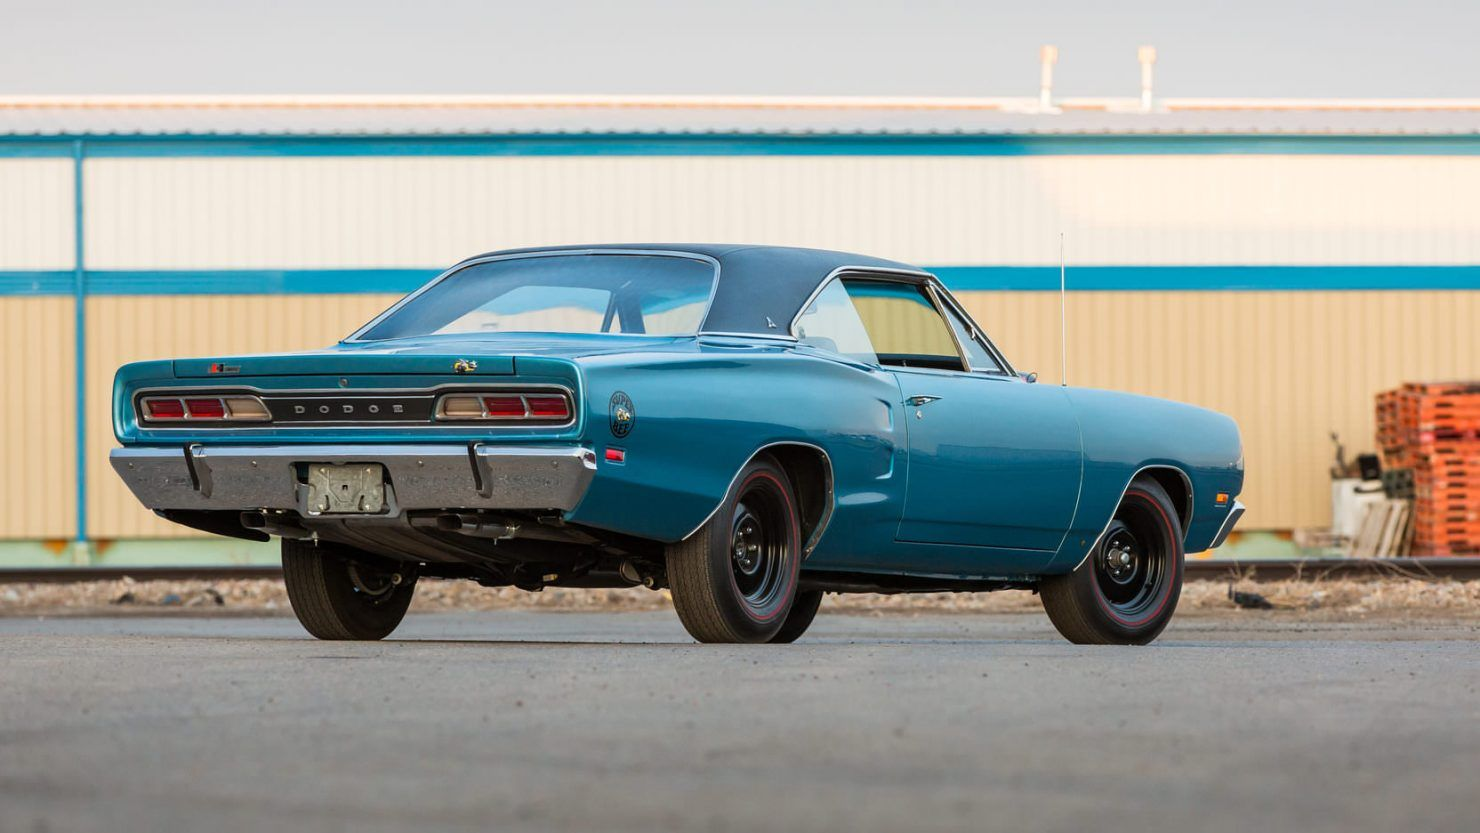 1969 Dodge Super Bee 440 Six Pack Dodge Super Bee Affordable Muscle Cars Dodge